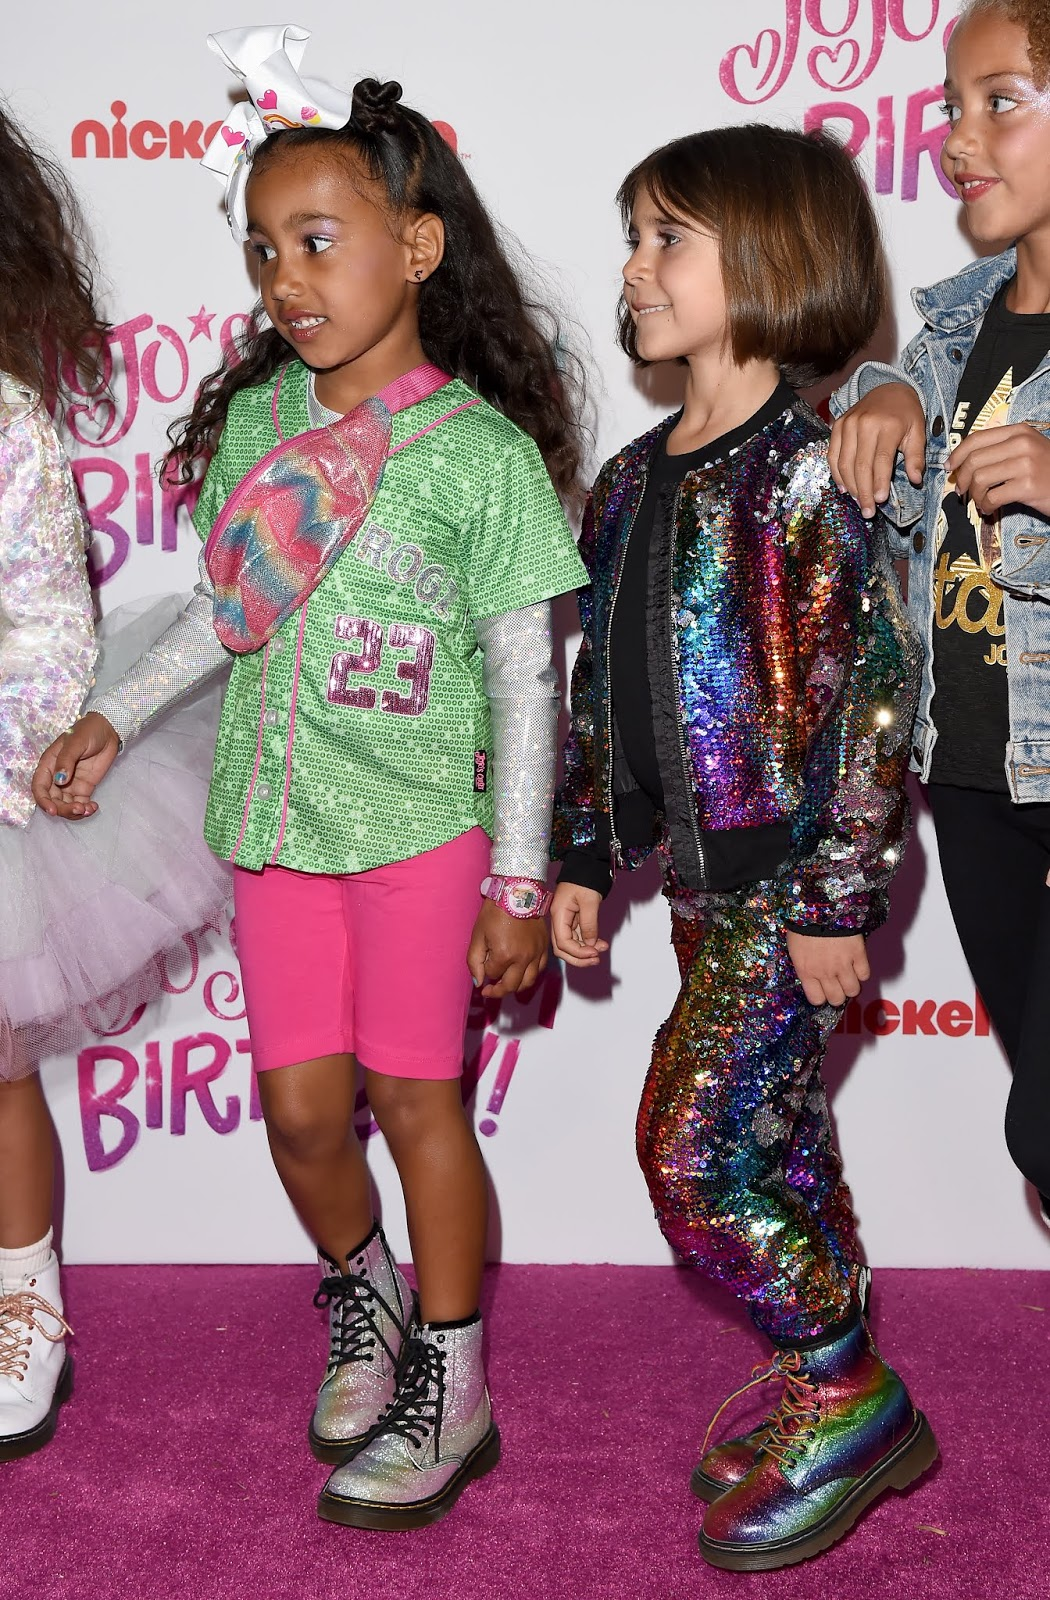 dadd949608c31c North West and Penelope Disick attend JoJo Siwa s Sweet 16 Birthday  celebration at W Hollywood on April 09